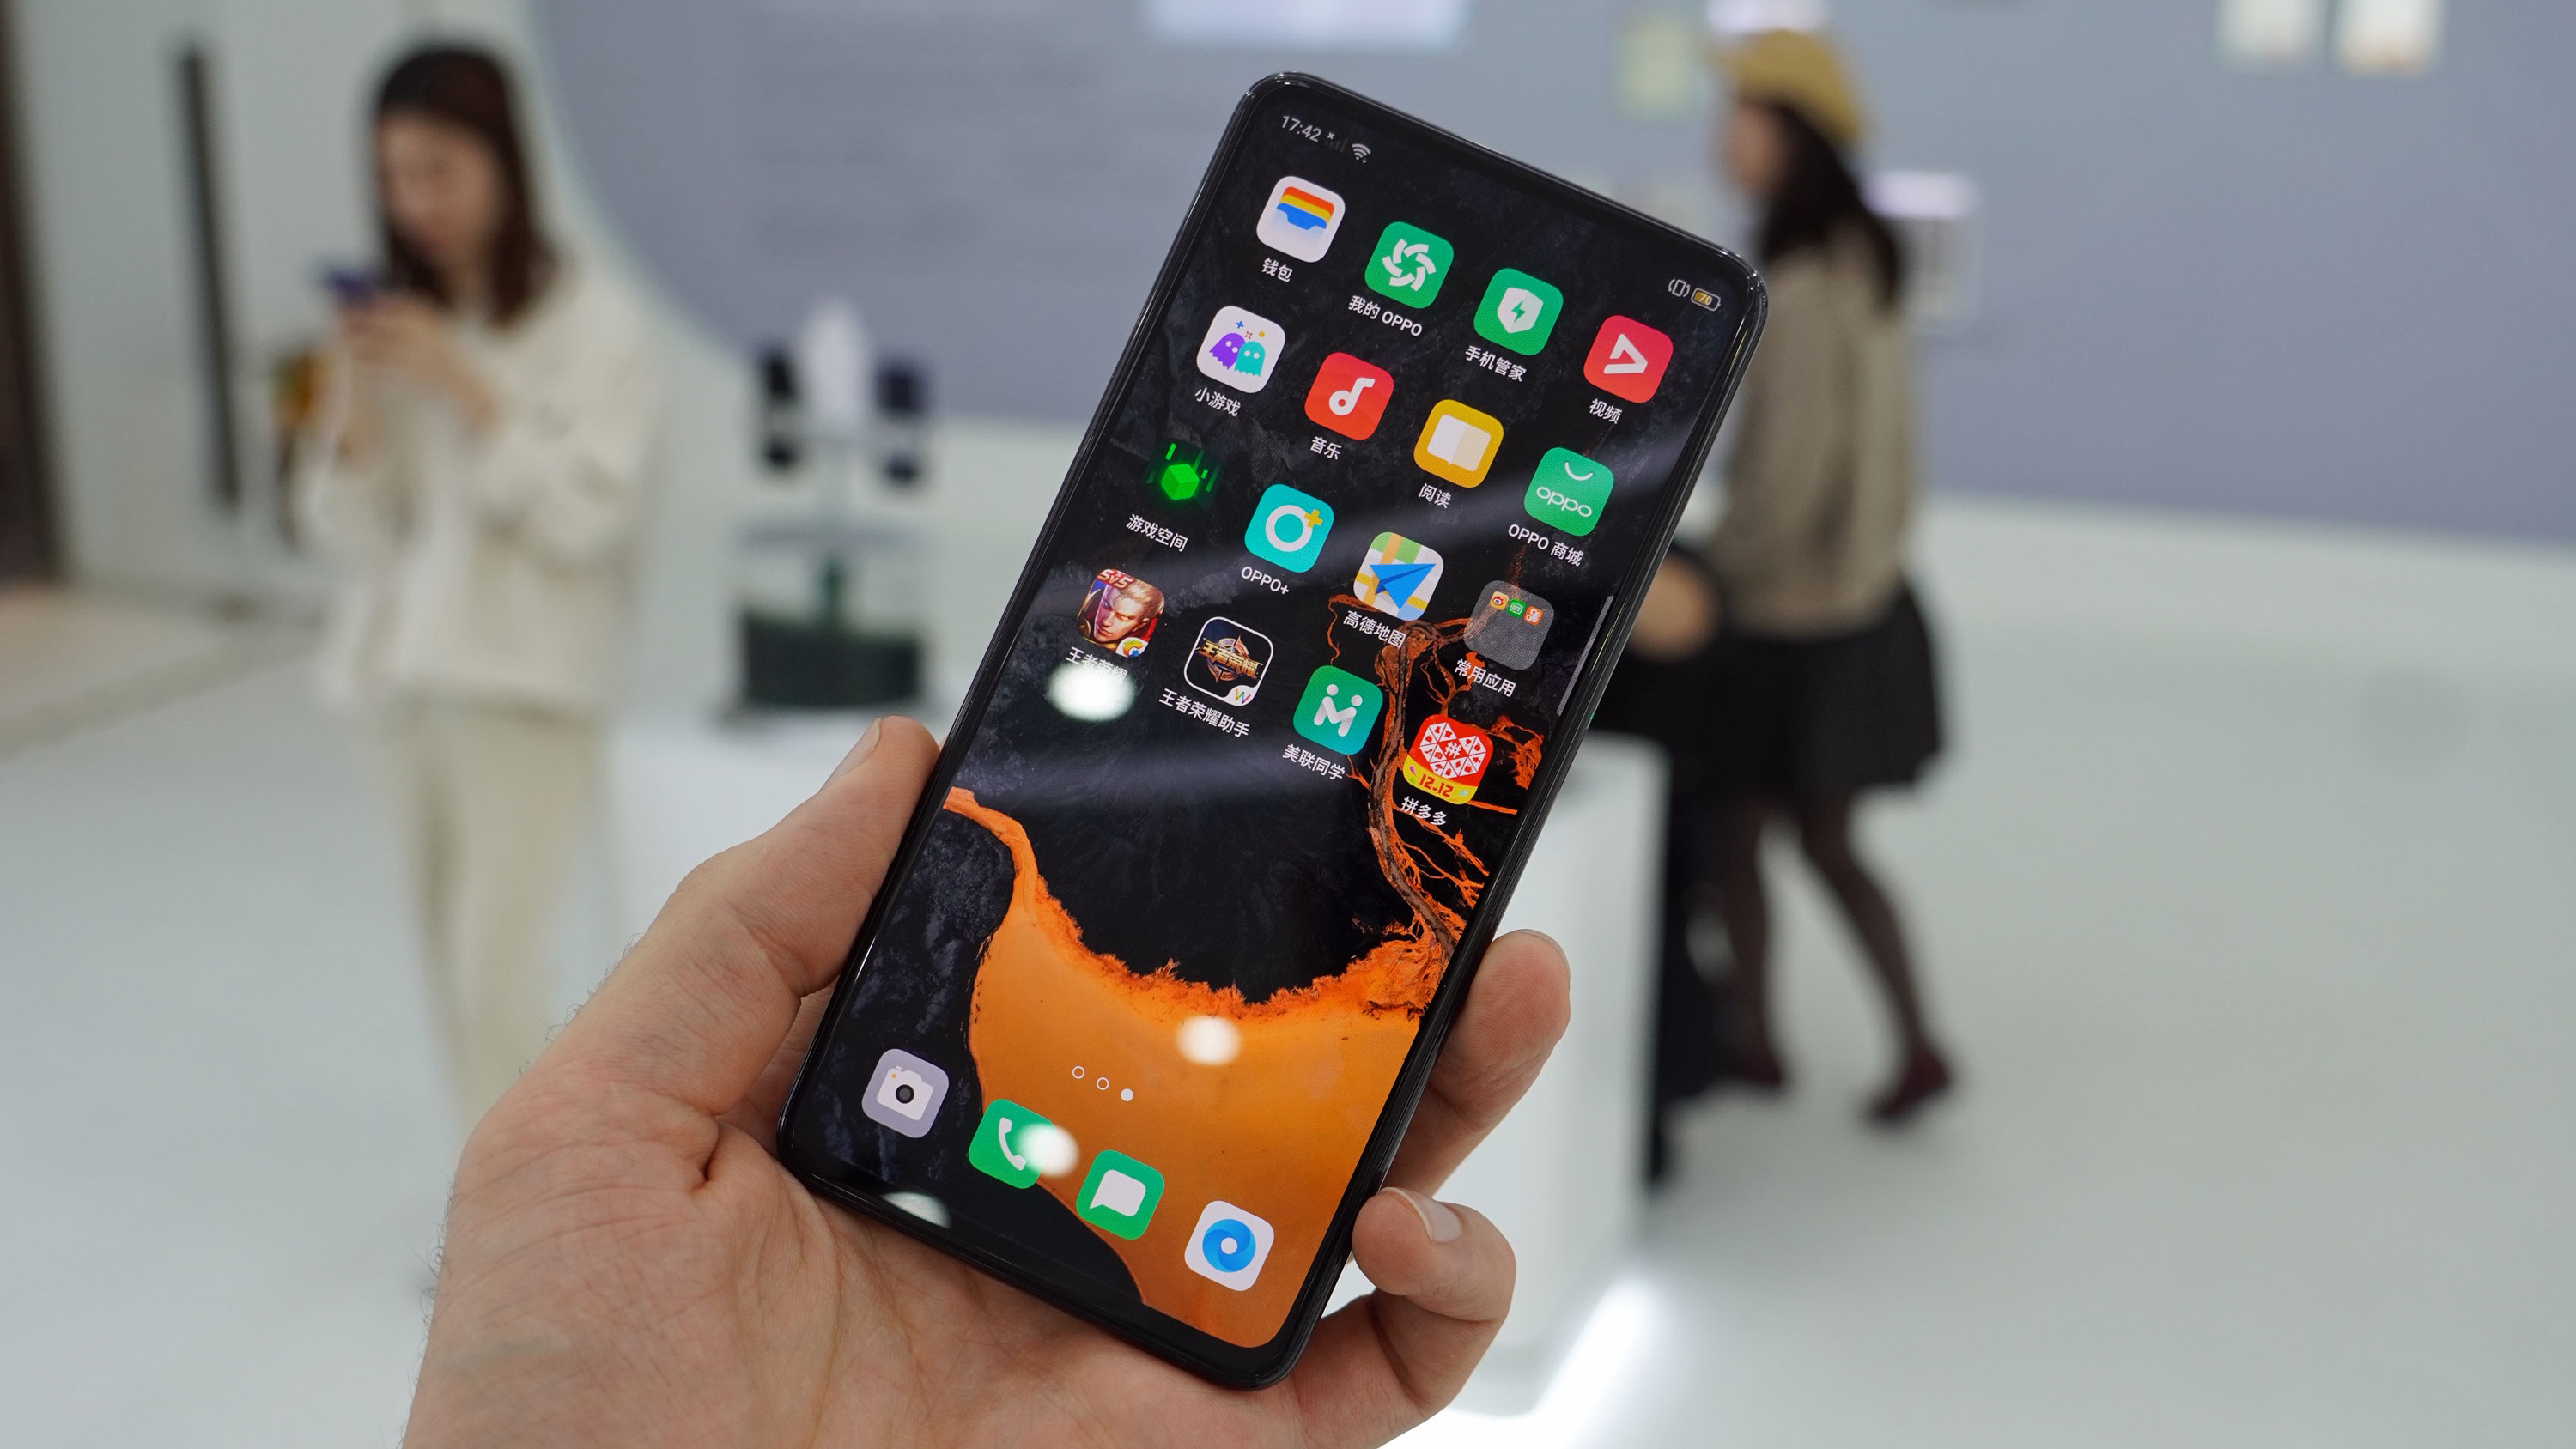 Best Non Smartphone 2021 This phone of the future has no buttons, ports, bezels or visible